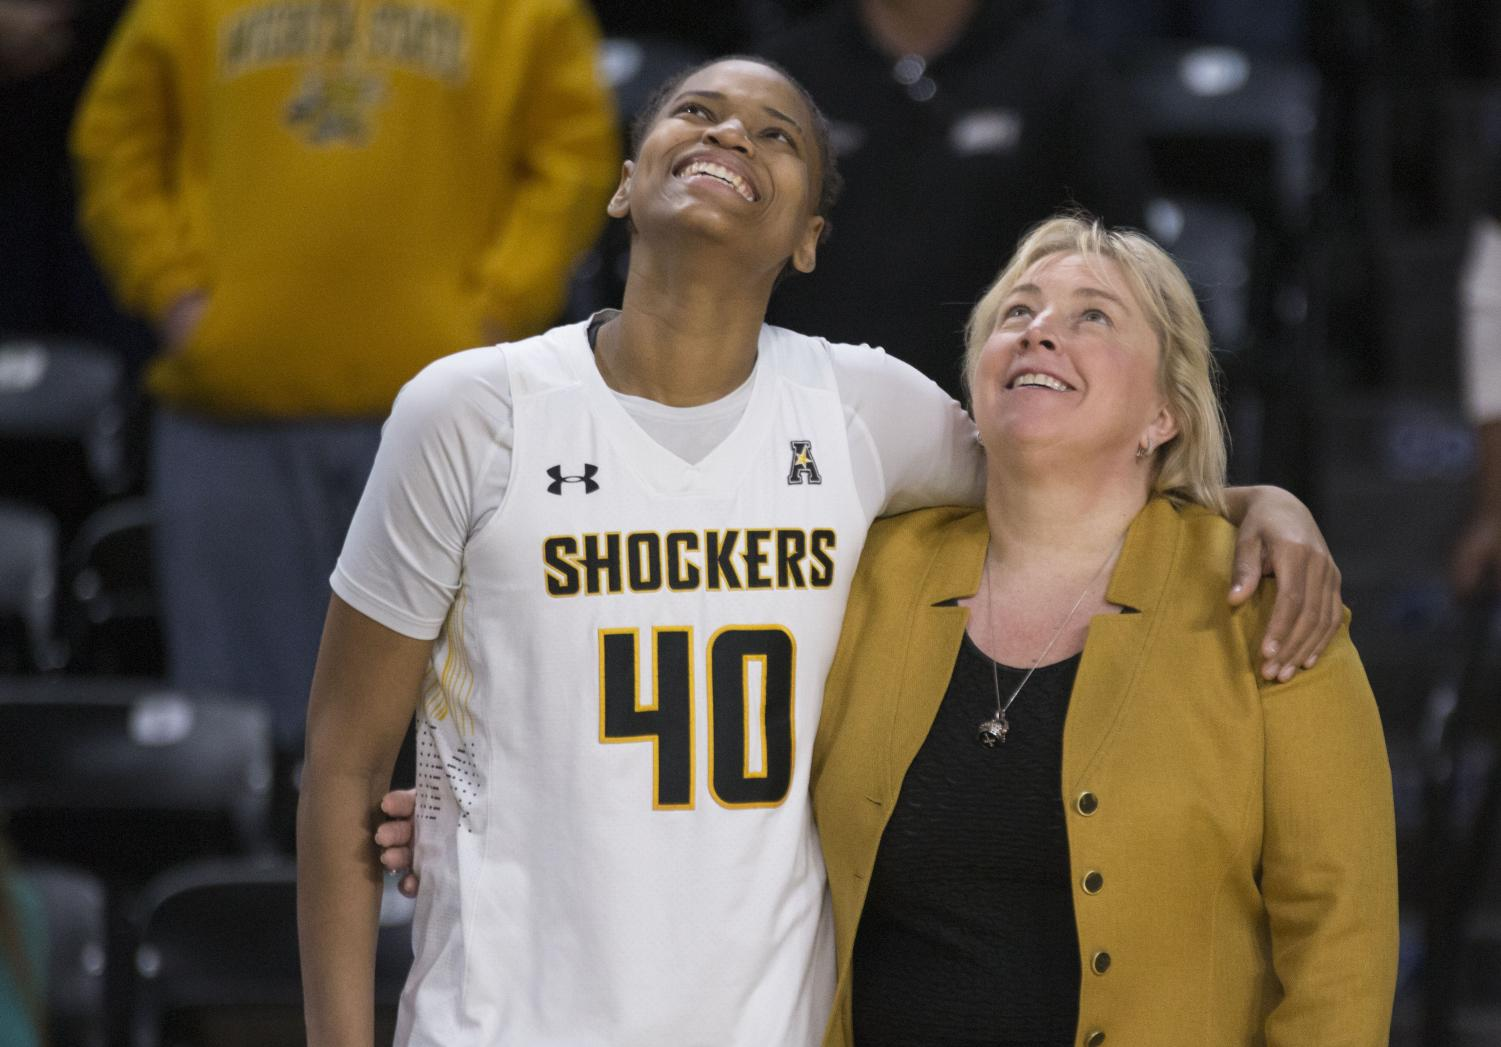 February 24, 2018: Wichita State senior Angiee Tompkins watches the senior highlight reel with head coach Keitha Adams.